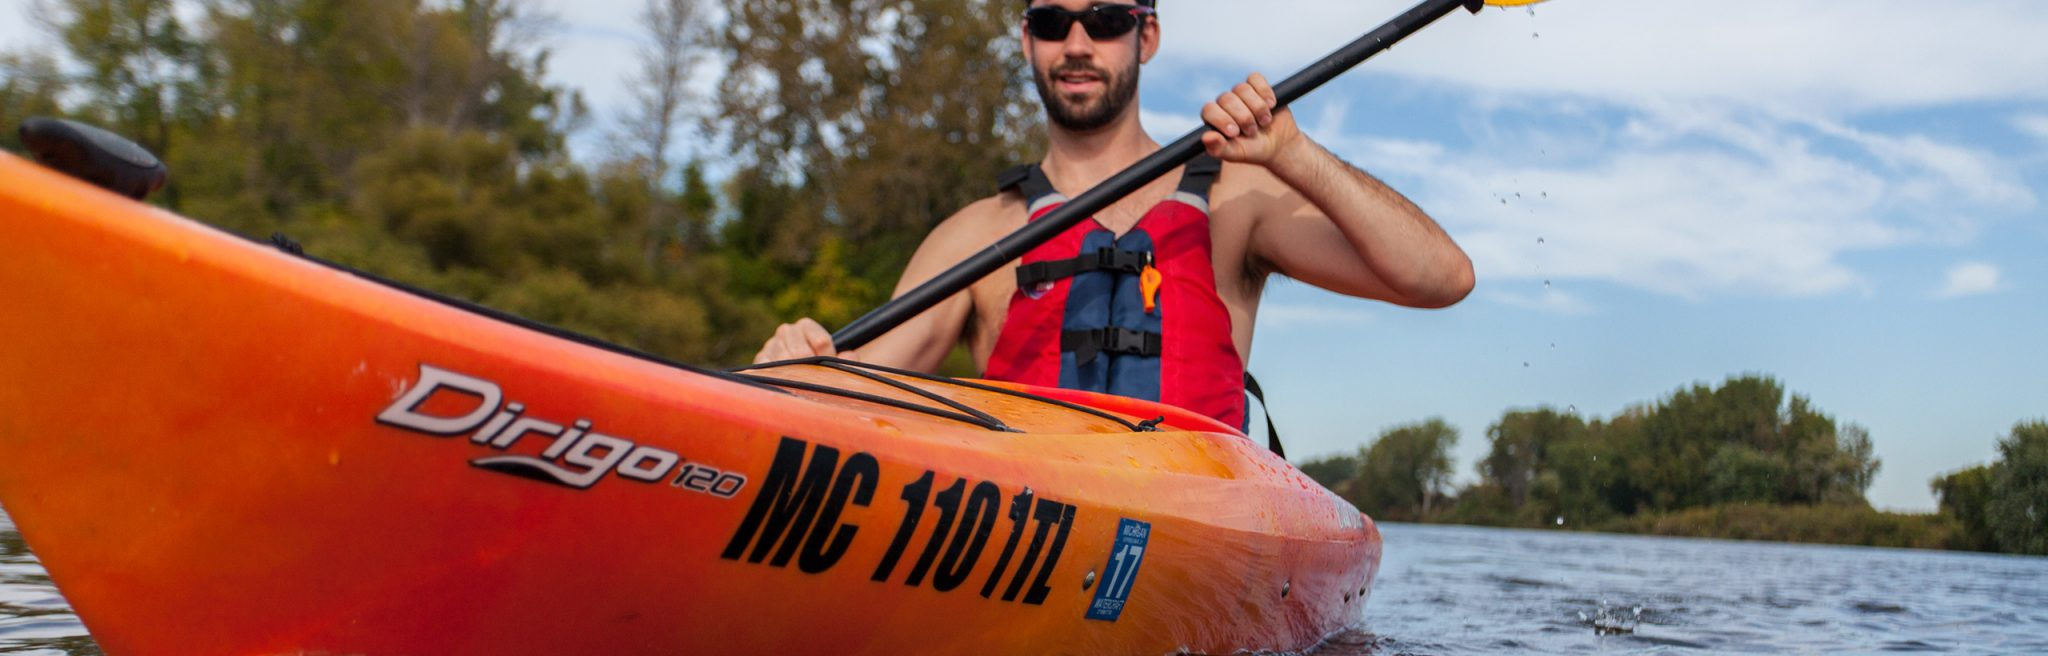 TTD-OUTDOOR-ACTIVITIES-WATERSPORTS-kayaking2